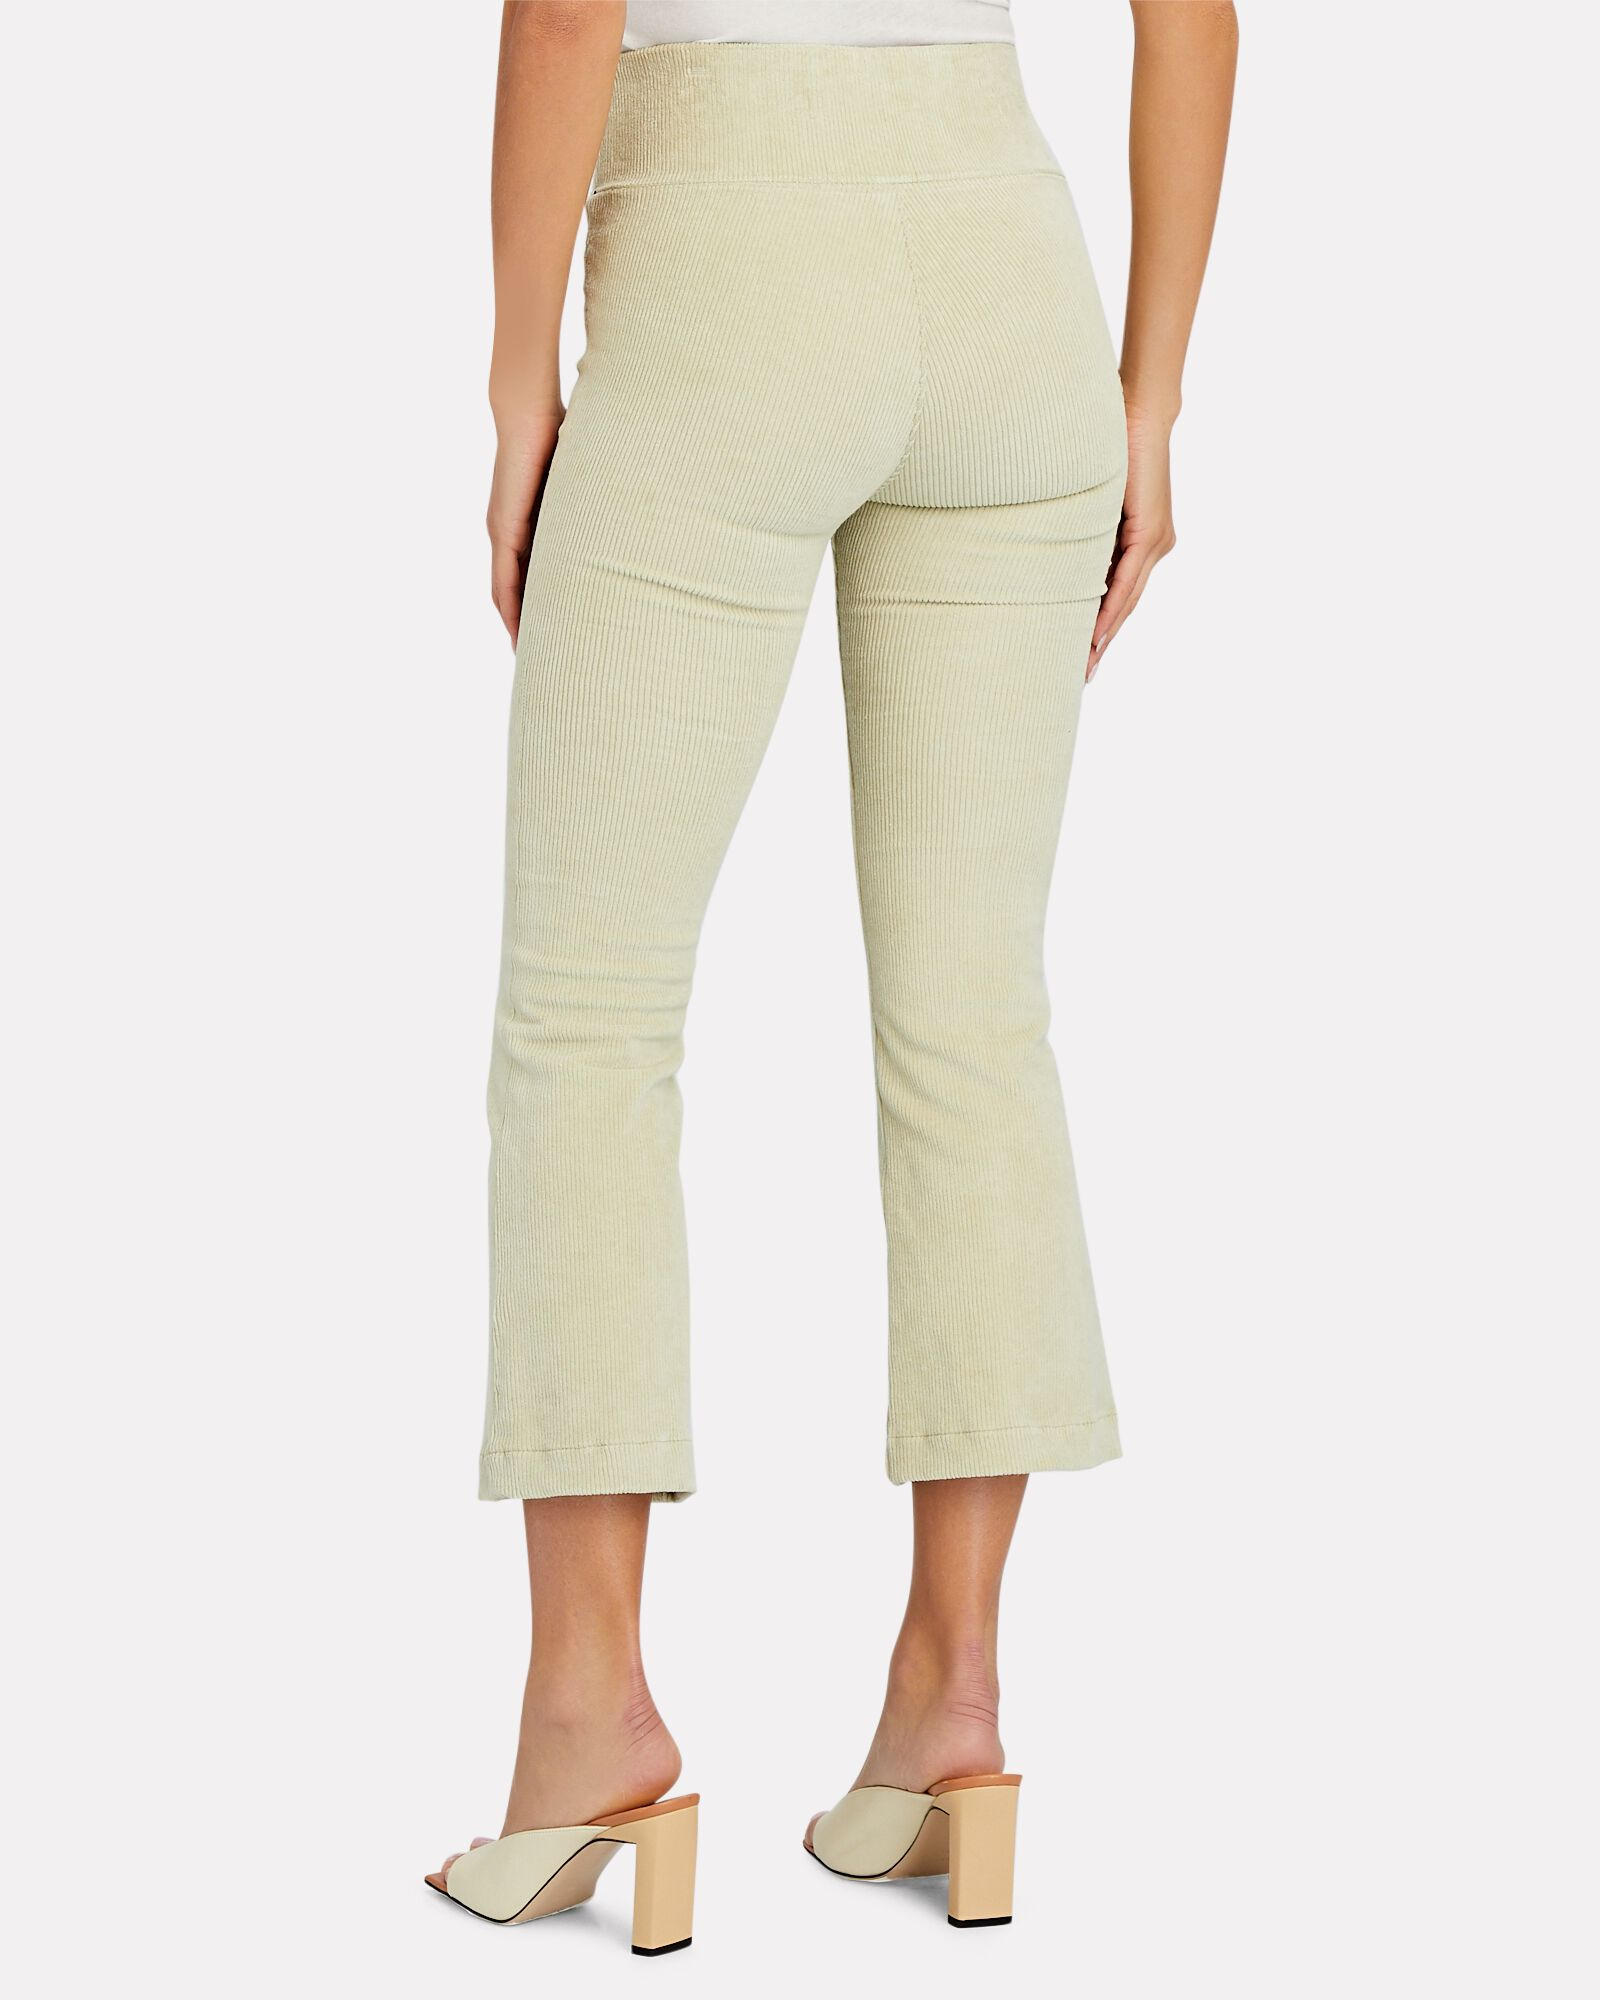 Ankle Flare Corduroy Leggings, IVORY, hi-res